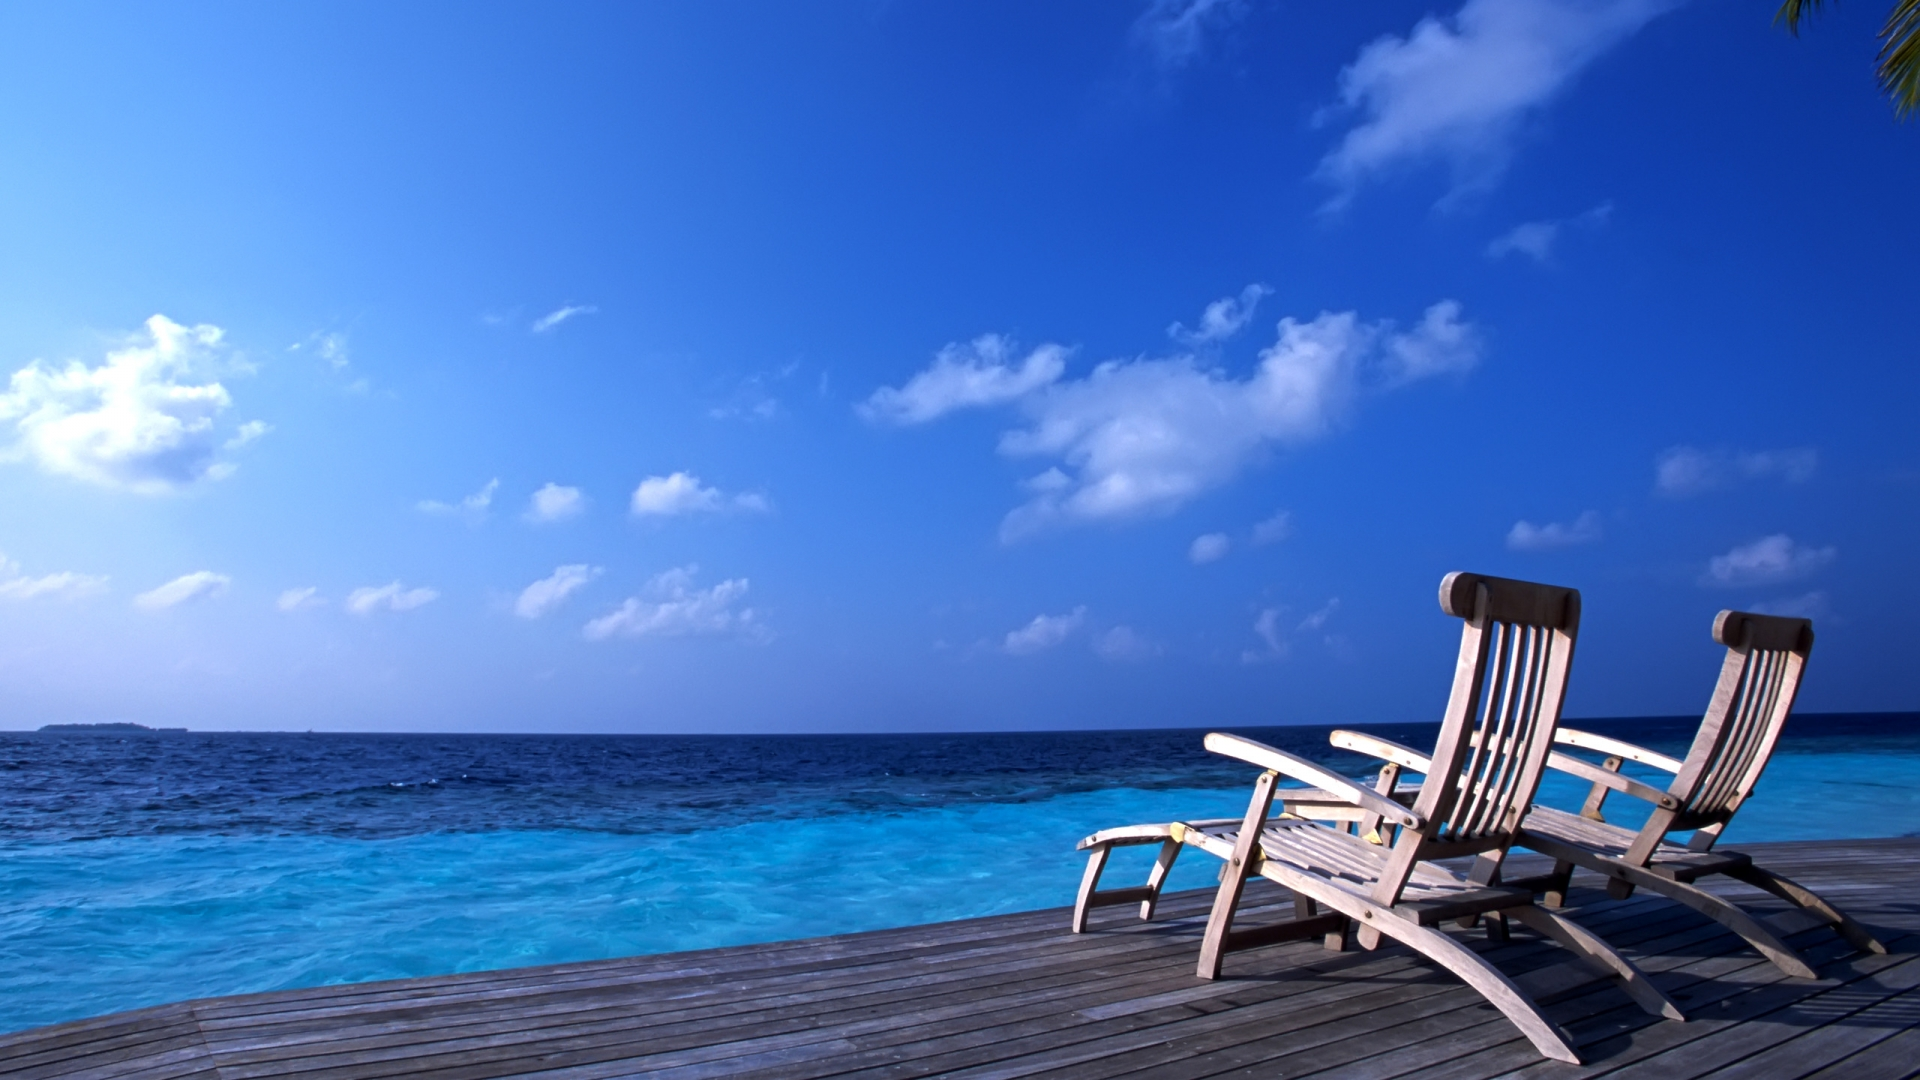 Beach Chair Desktop Wallpaper - WallpaperSafari